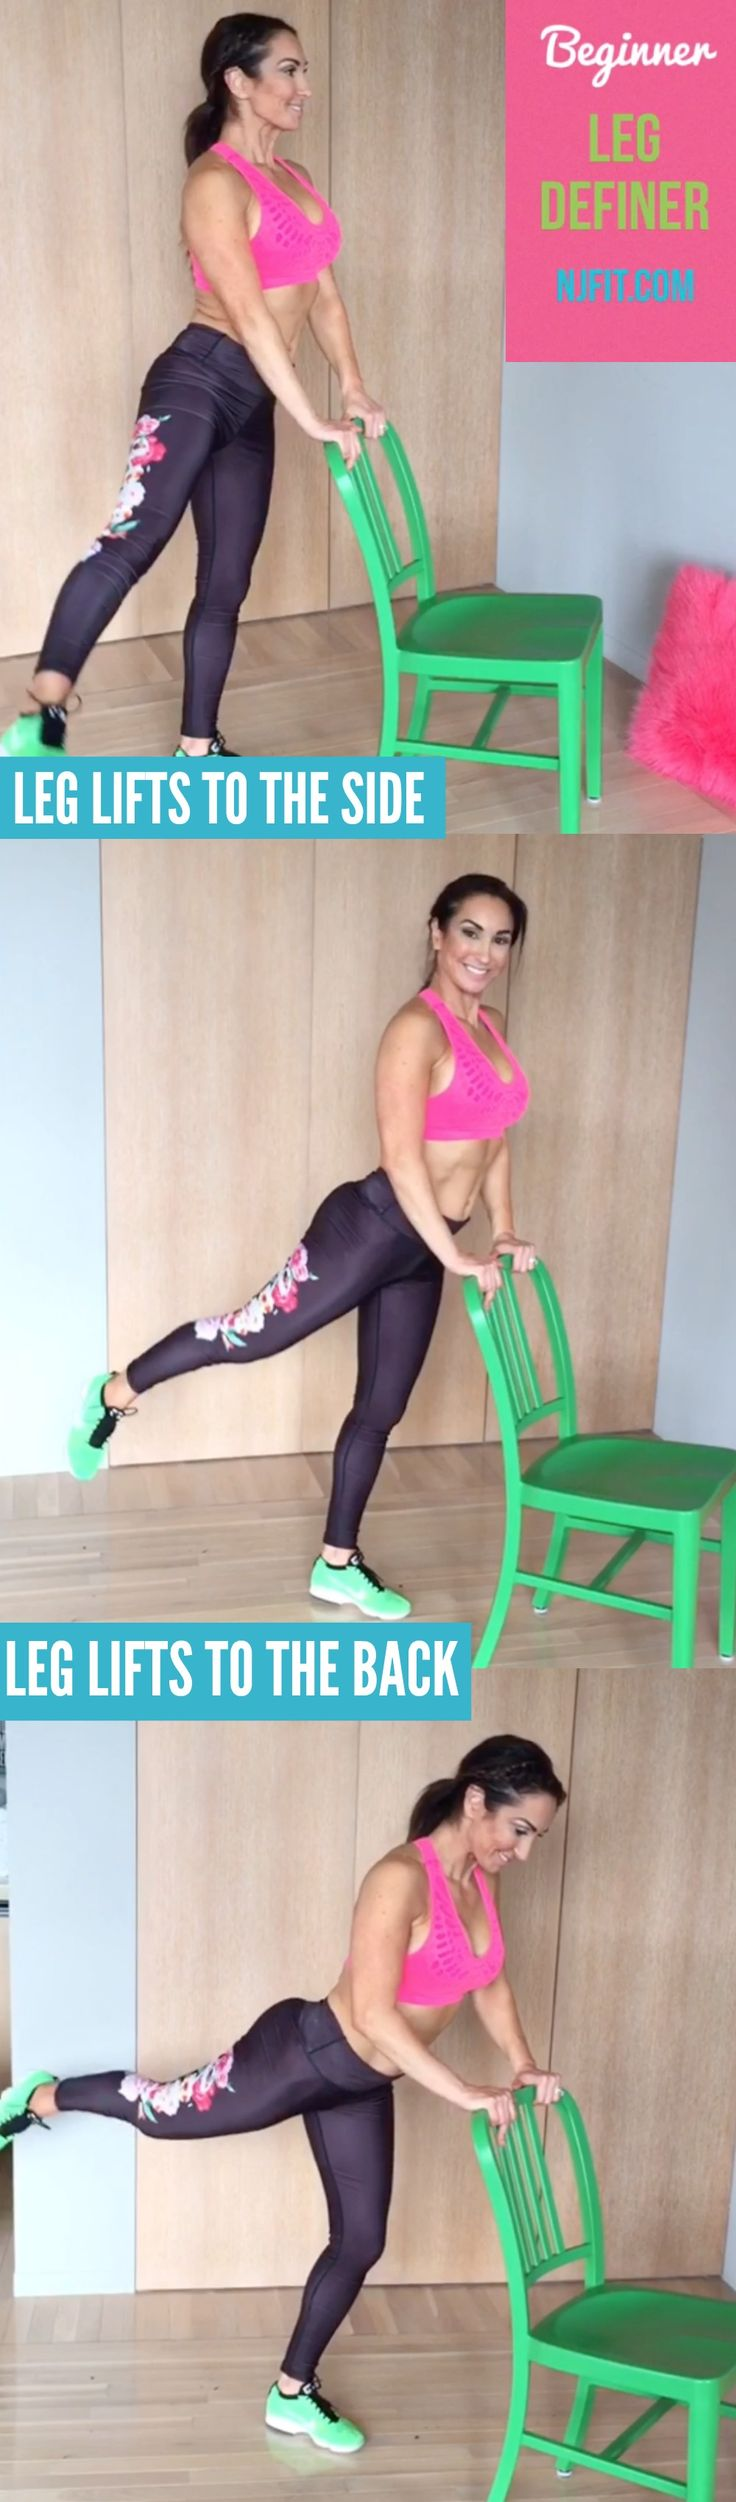 BEGINNER leg workout routine! Leg lifts to the side Leg lifts to the back (bend forward knee to make this easier on lower back Aim for 60 seconds of each exercise on each leg  Are you IN? Click the image to watch video.